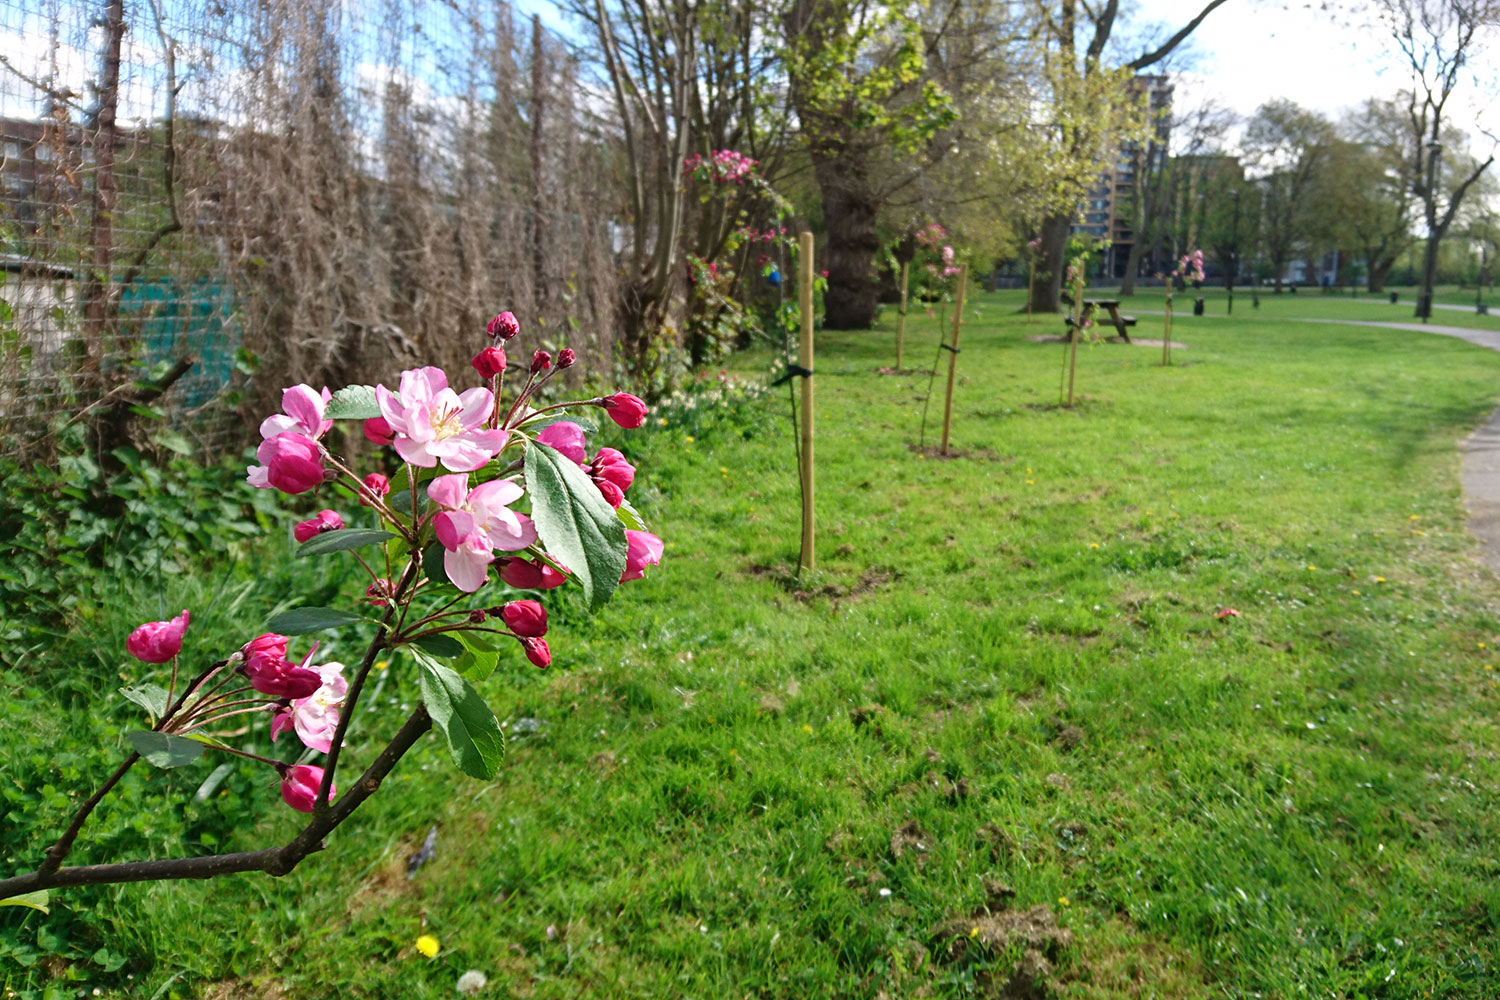 Row of newly planted crab apple trees with pink flowers in Meath Gardens, East London